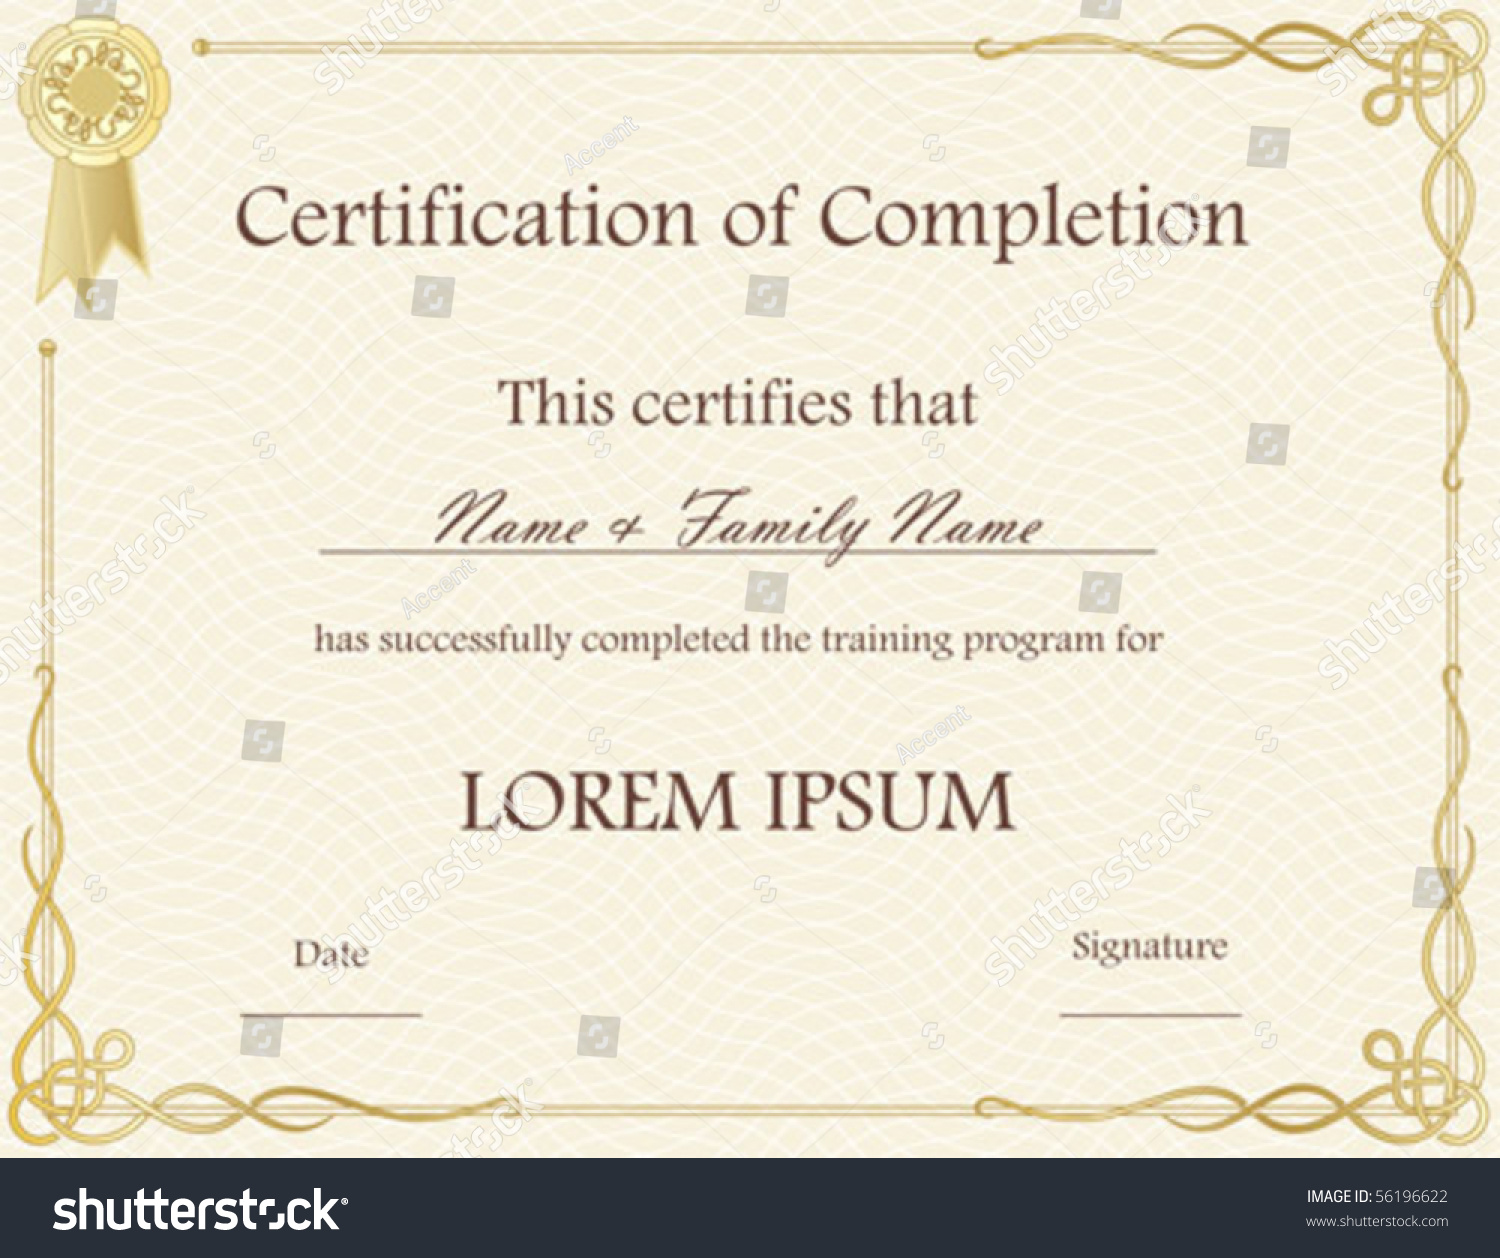 Doc500353 Certificate of Completion Template Free Free – Certificate of Completion Template Free